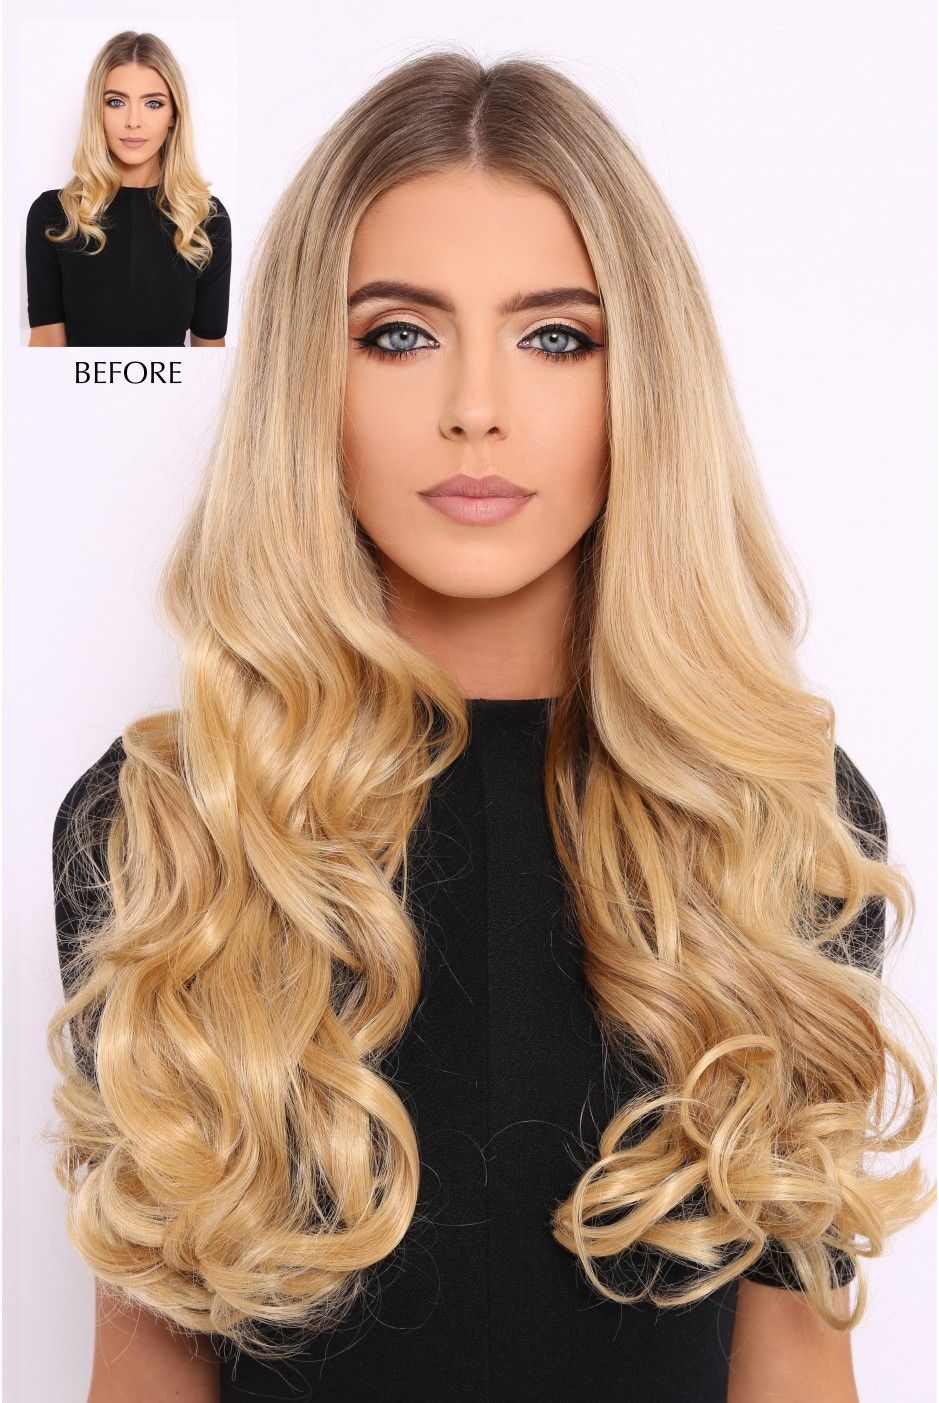 Super Thick 250g 8 Piece Curly Hair Extensions Beautiful Long